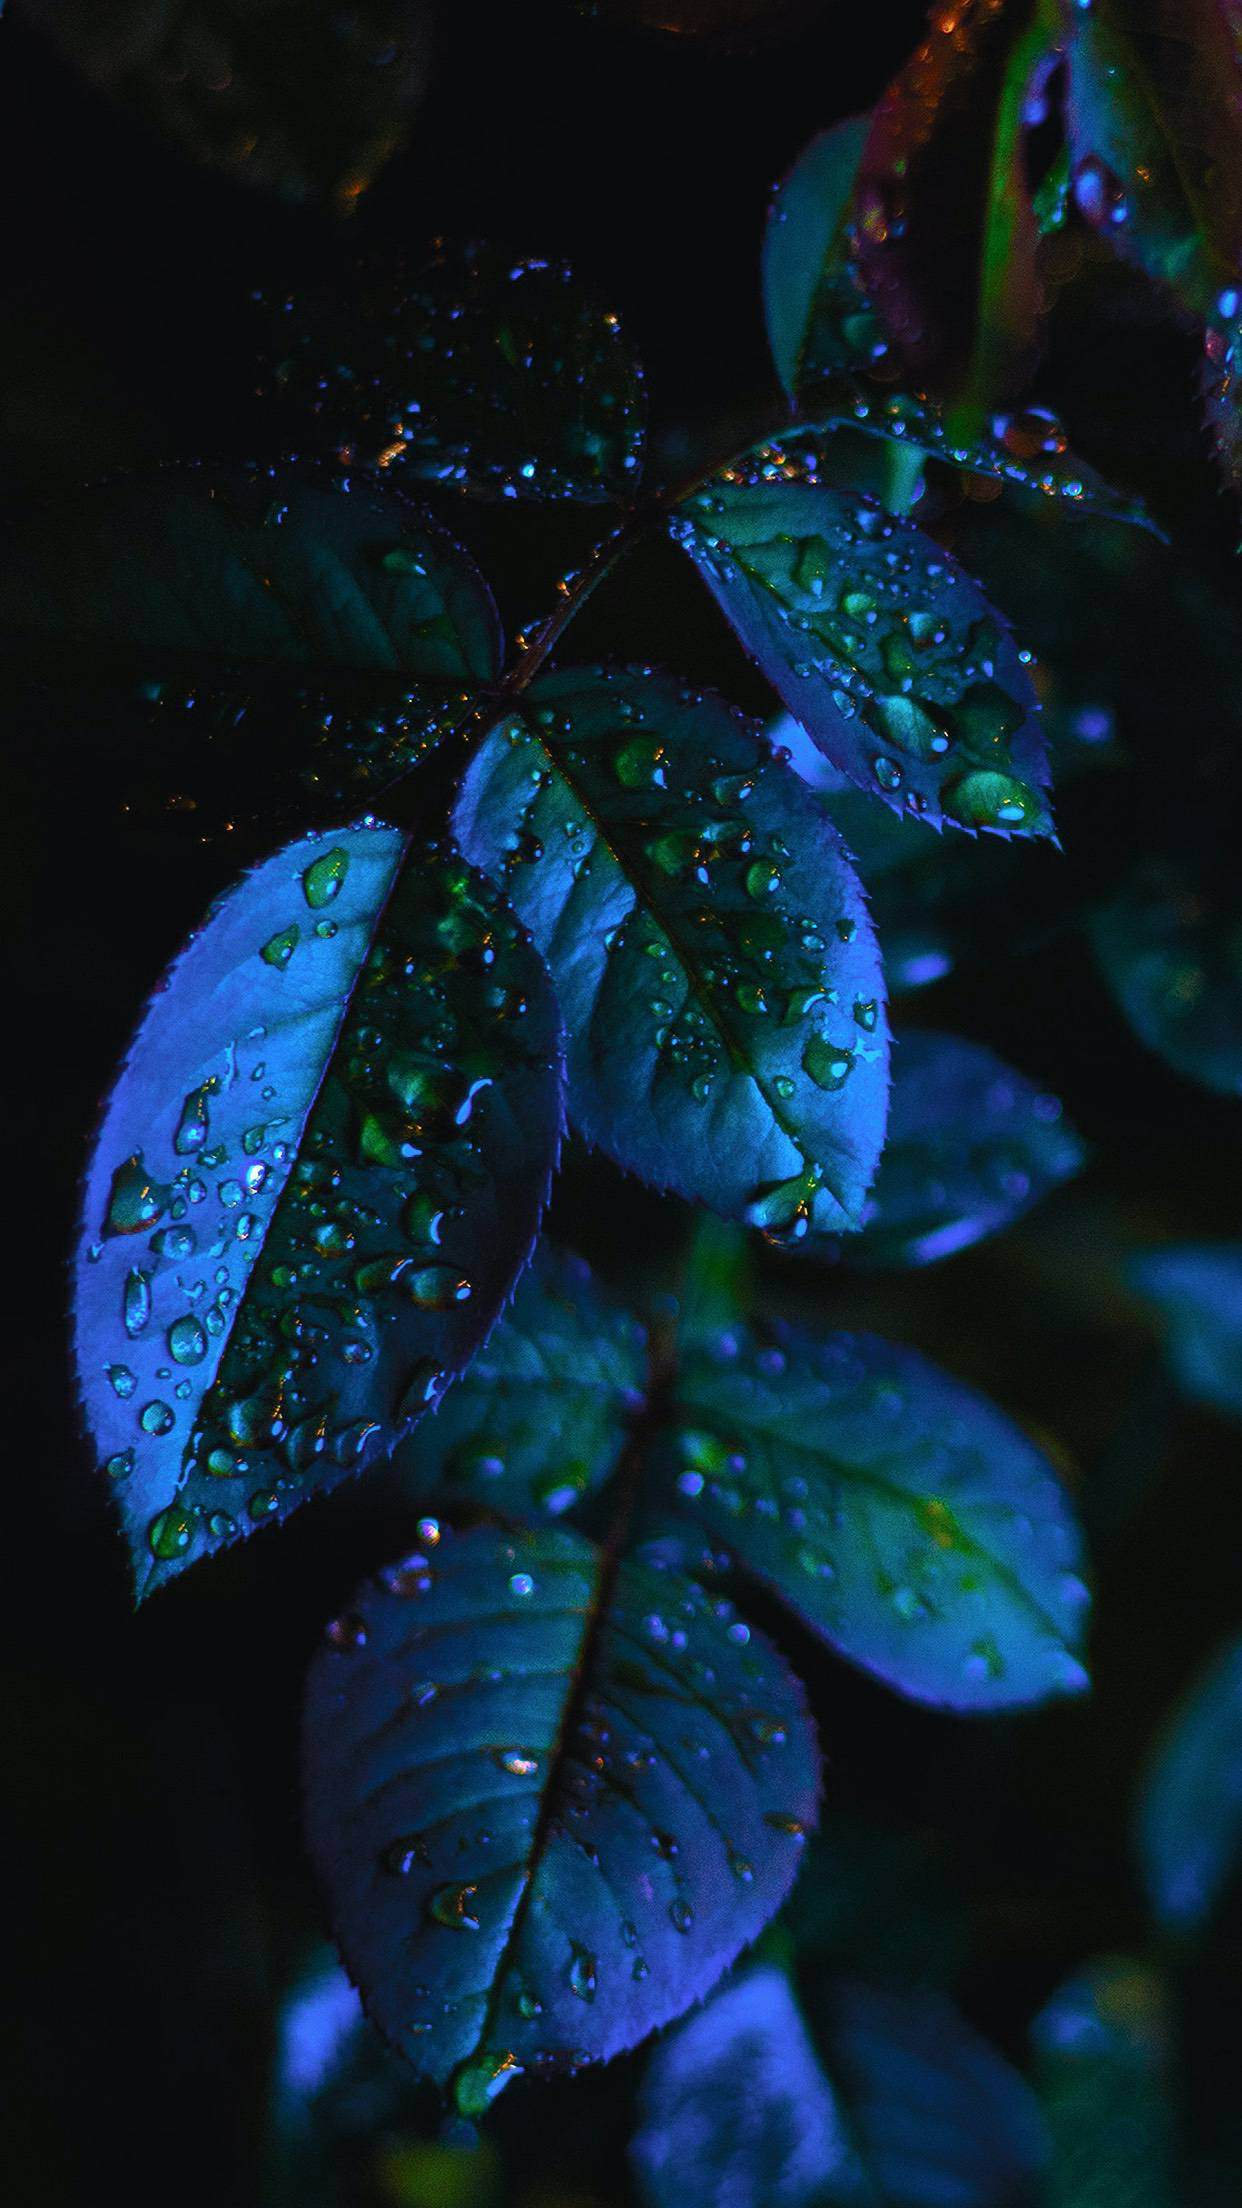 wallpaper iphone x green